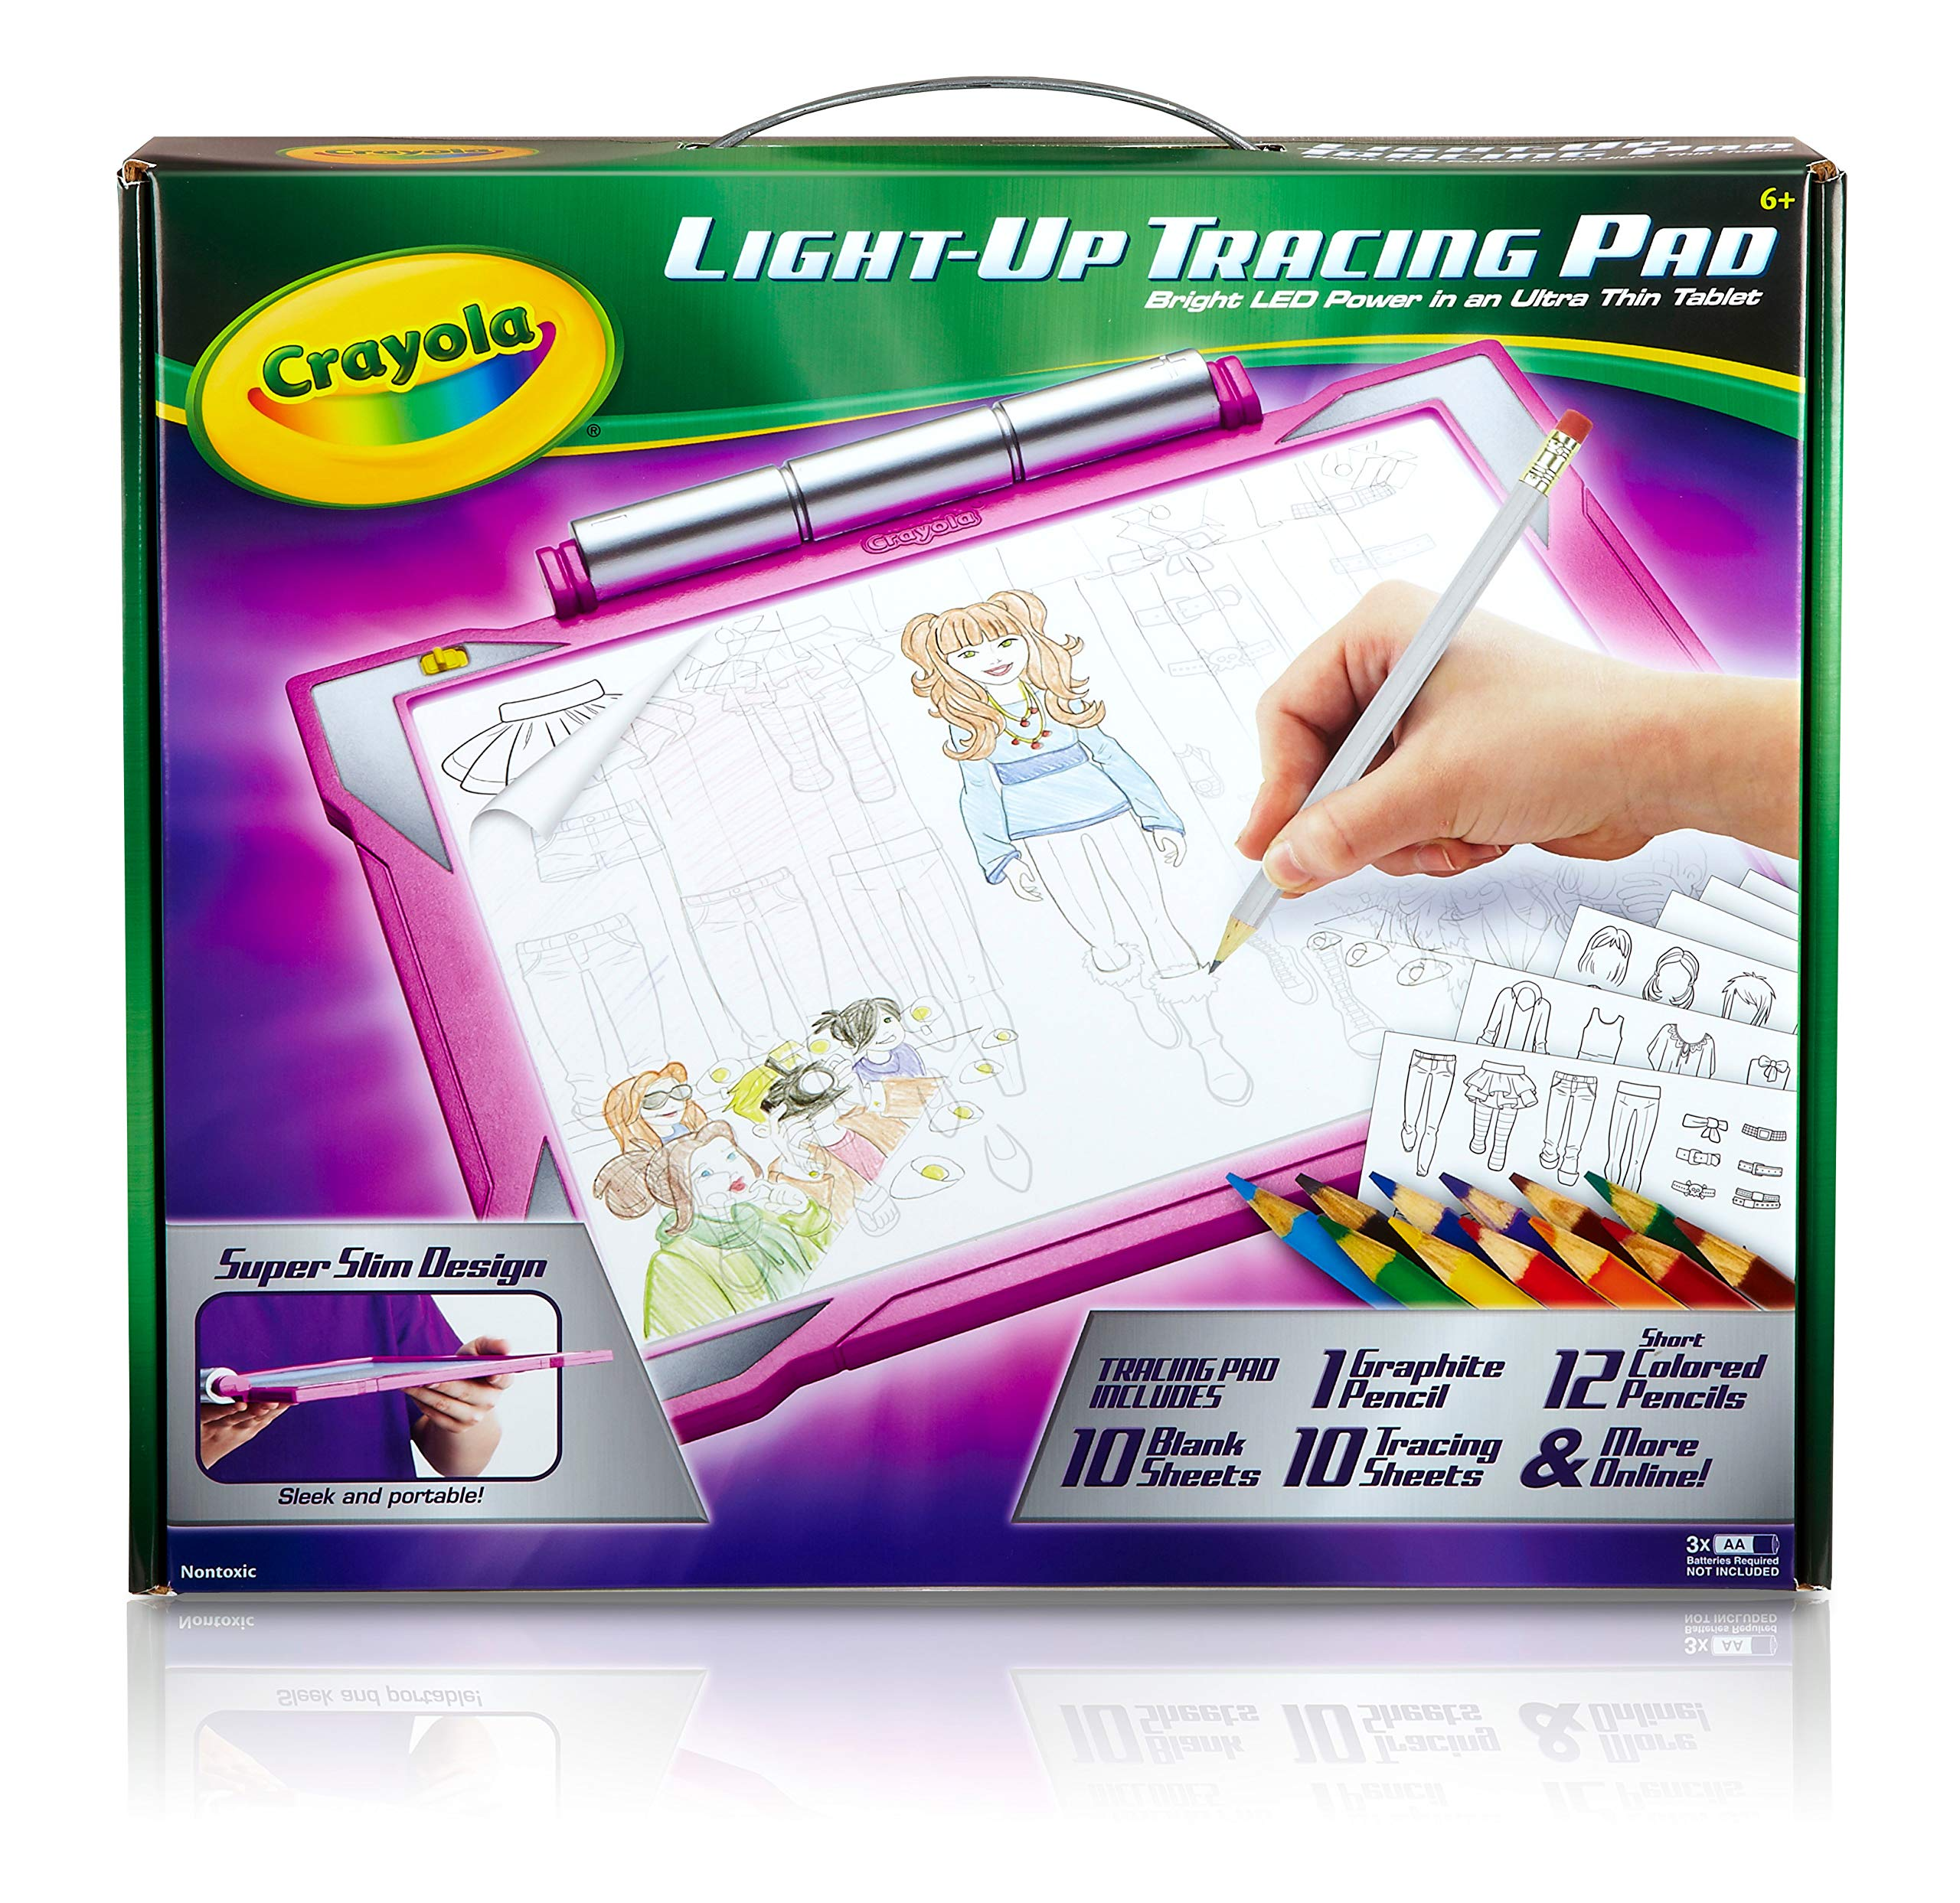 Crayola Light-up Tracing Pad - Pink, Coloring Board for Kids, Tracing Pencil and Sheets, 12 Colored Pencils, Easy Coloring Pages by Crayola